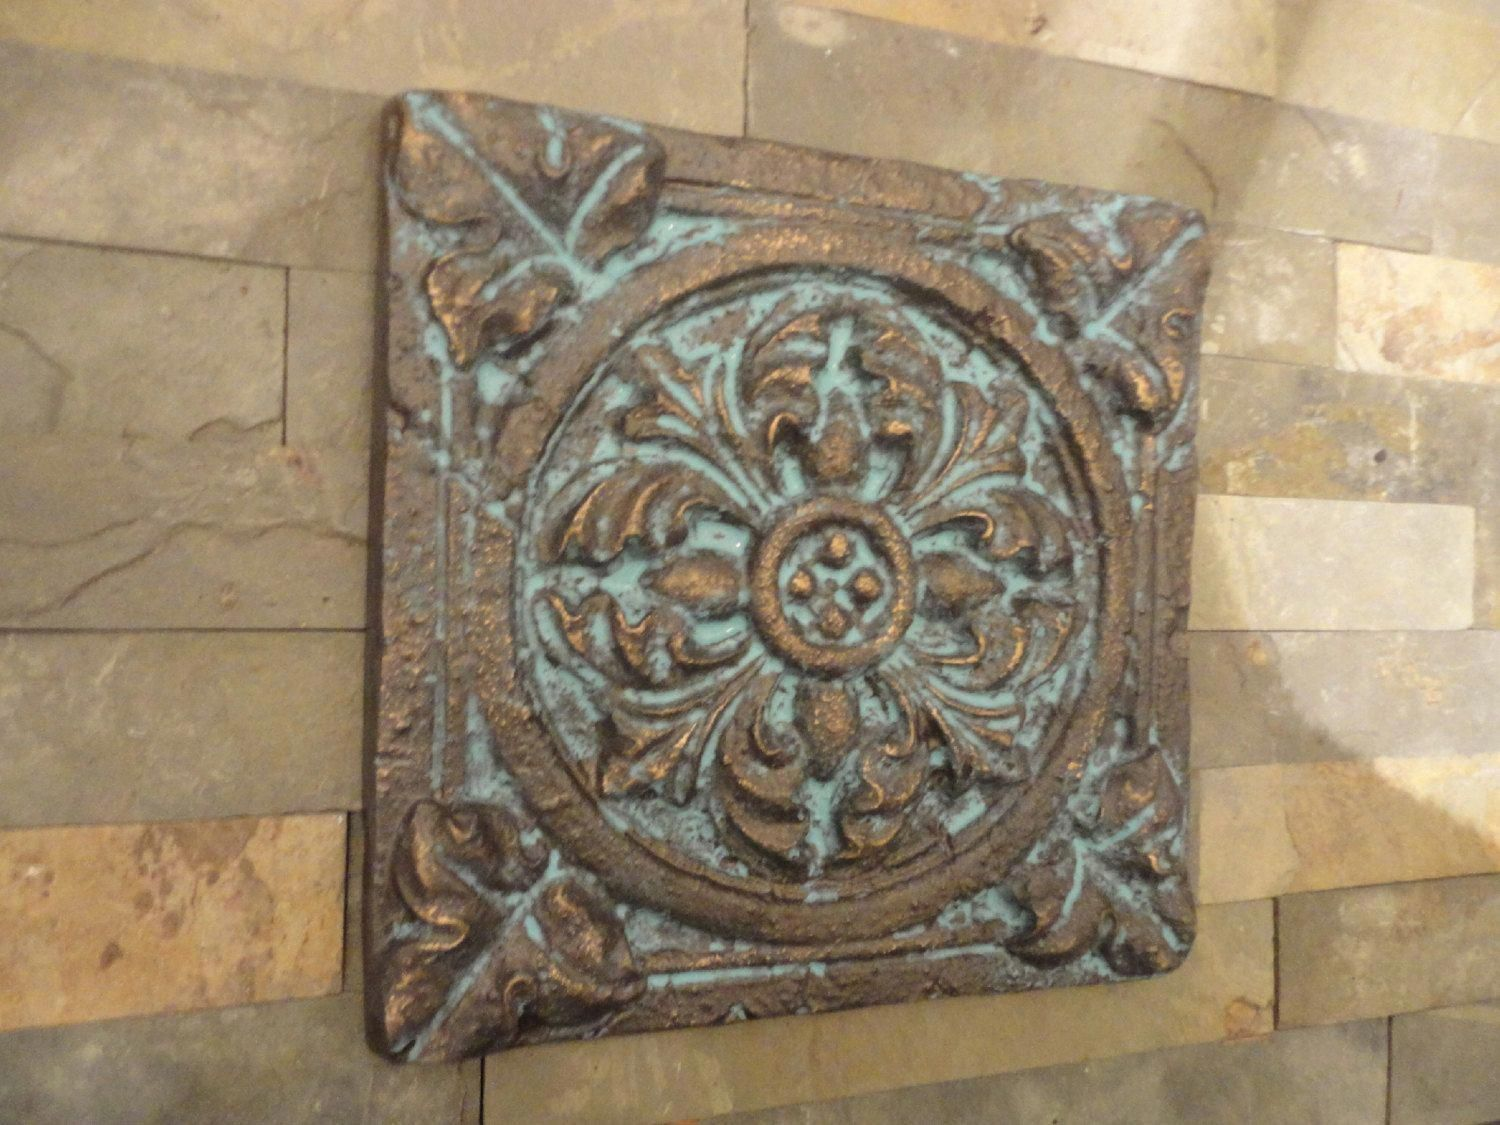 Mediterranean Wall Decor Wall Art Indoor Or Outdoor Patina Blue Rubbed Bronze Finish 28 50 Via Etsy Tuscanstyle Artesanato